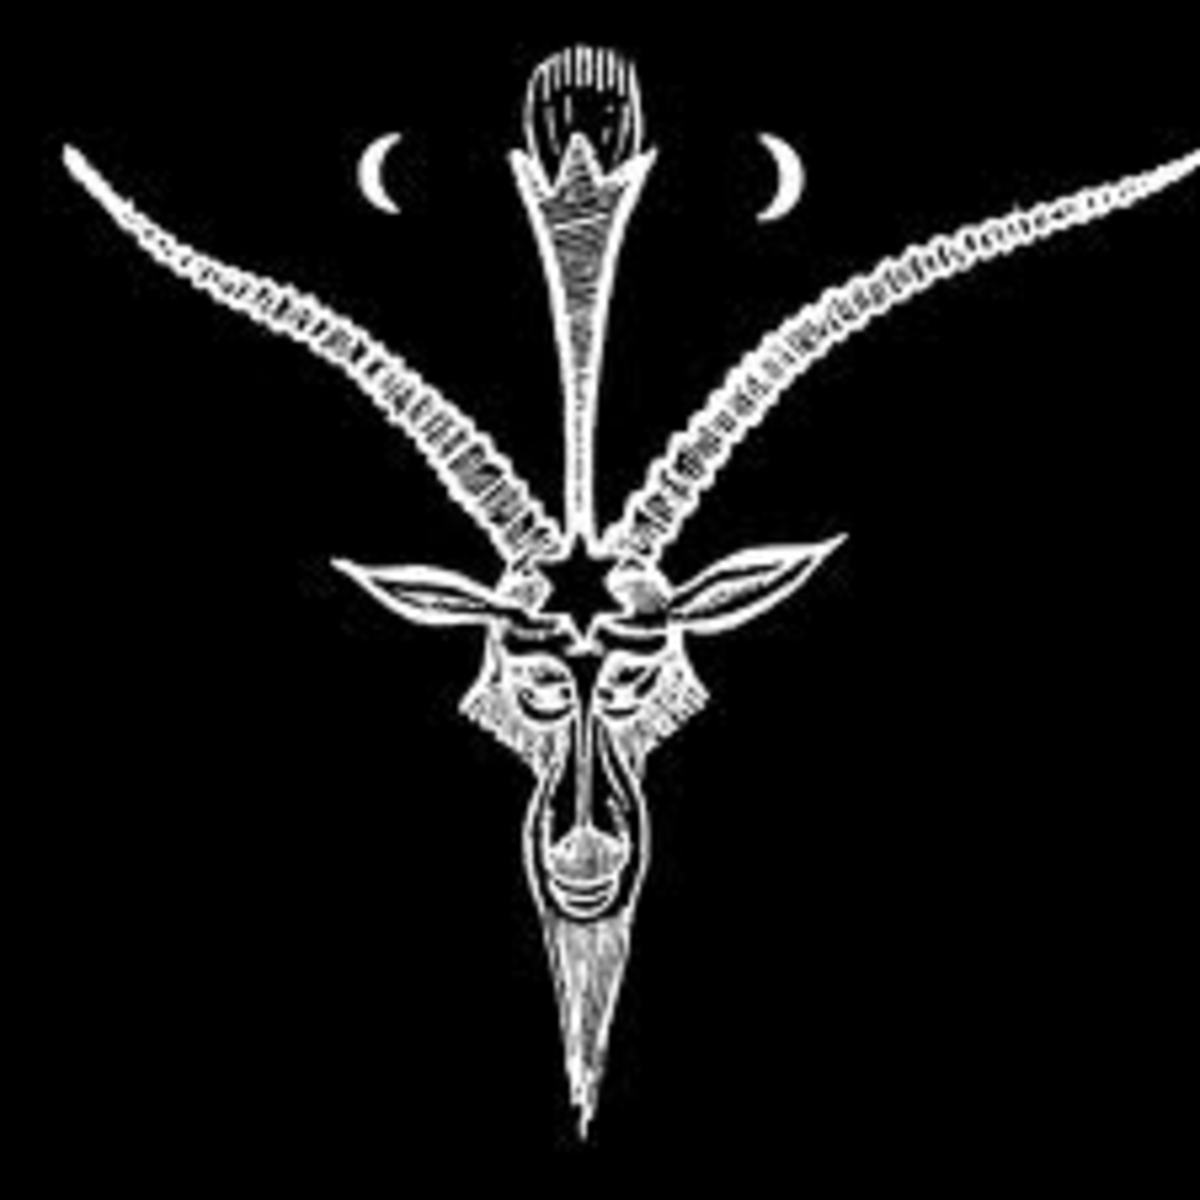 Capricorn is a sign of contradictions. It is associated with being the cool operator while harboring dark secrets beneath its cool exterior.